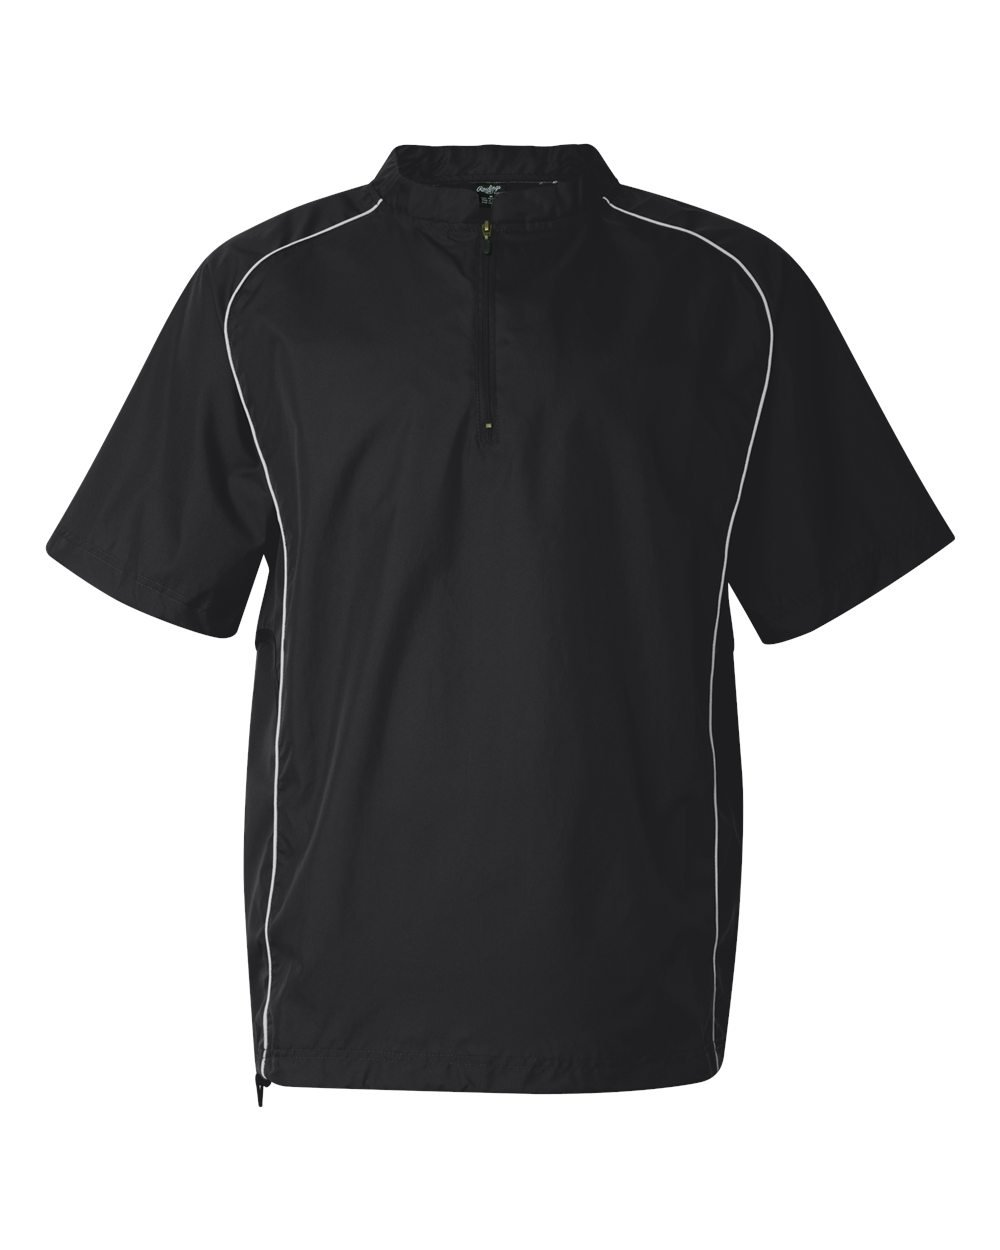 Rawlings Adult Quarter-Zip Short Sleeve Dobby Jacket With Piping (Black) (L)